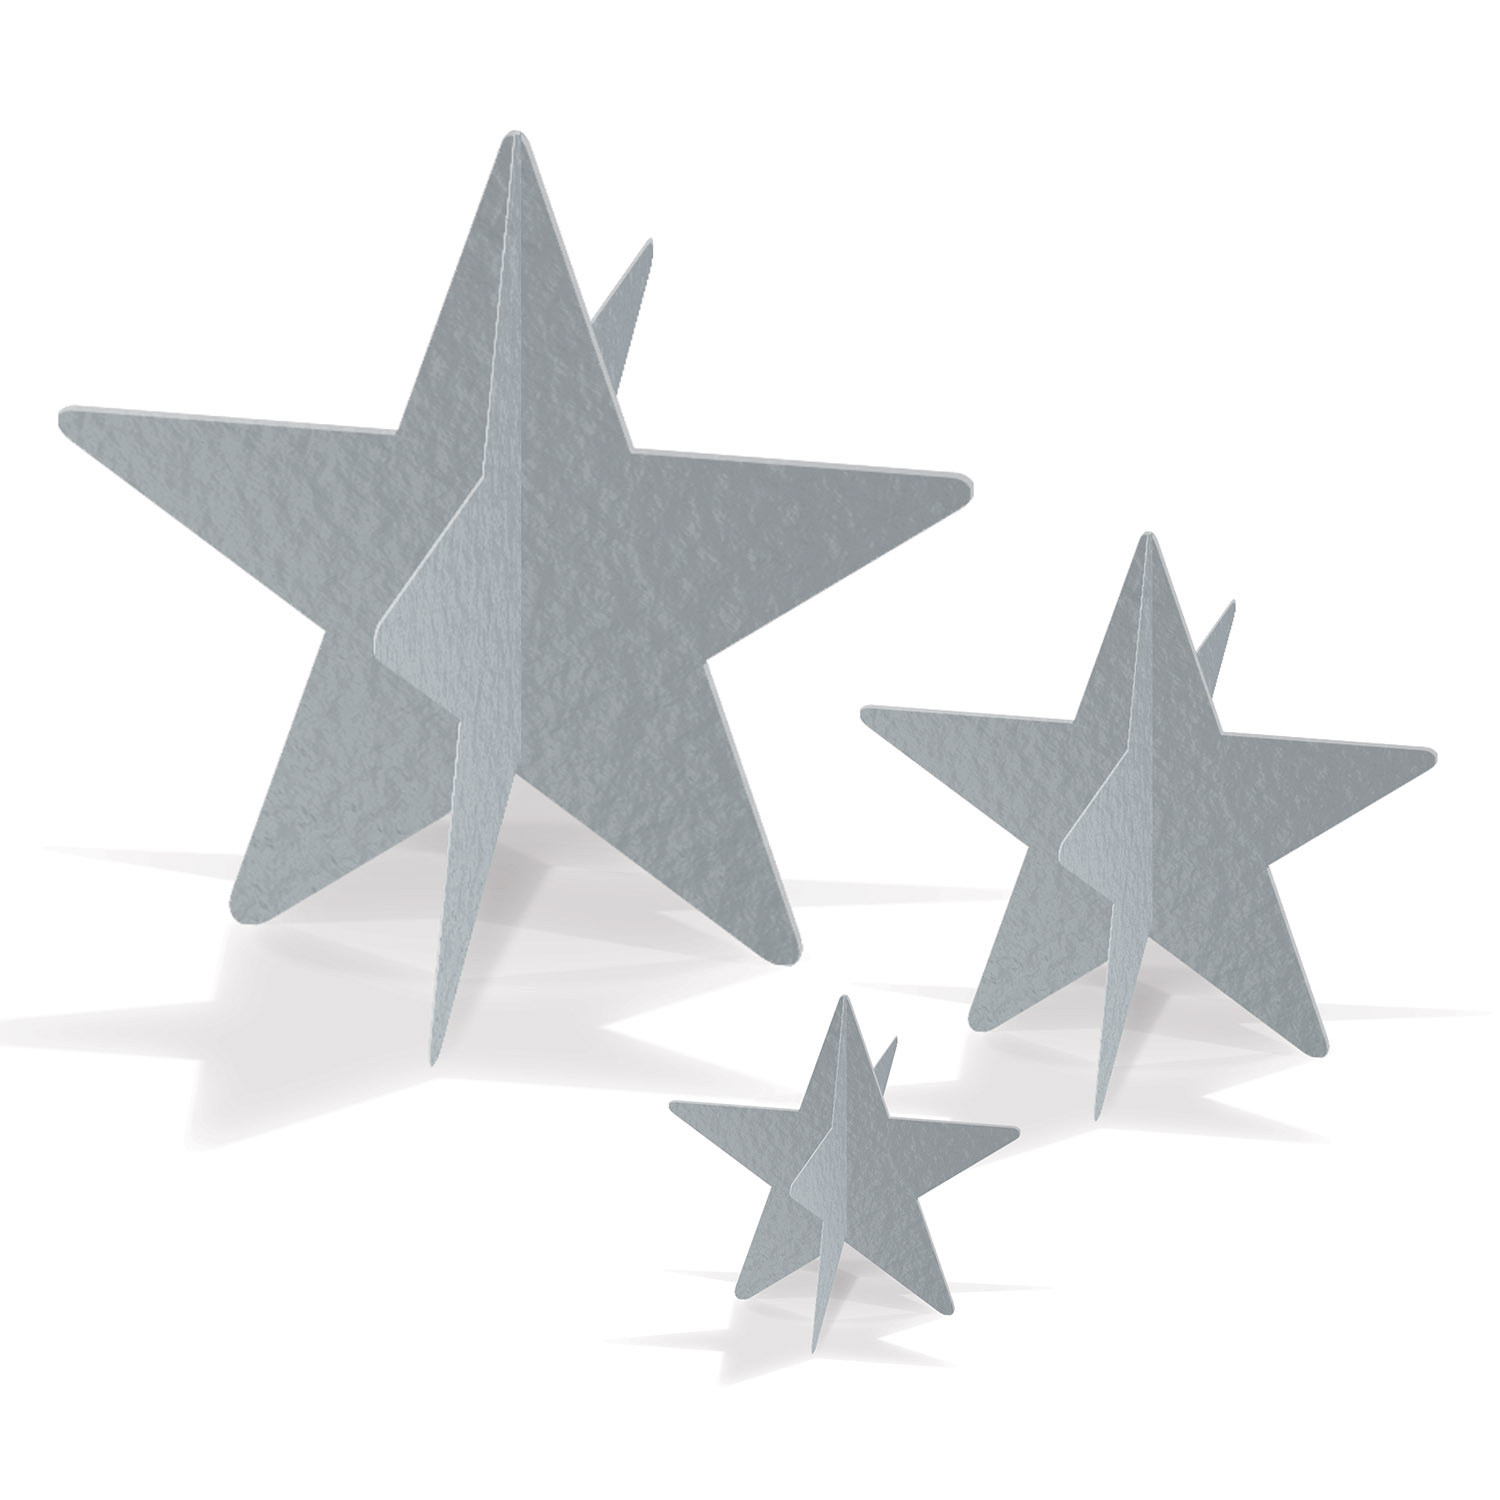 3-D silver foil star table centerpiece in small, medium, and large.